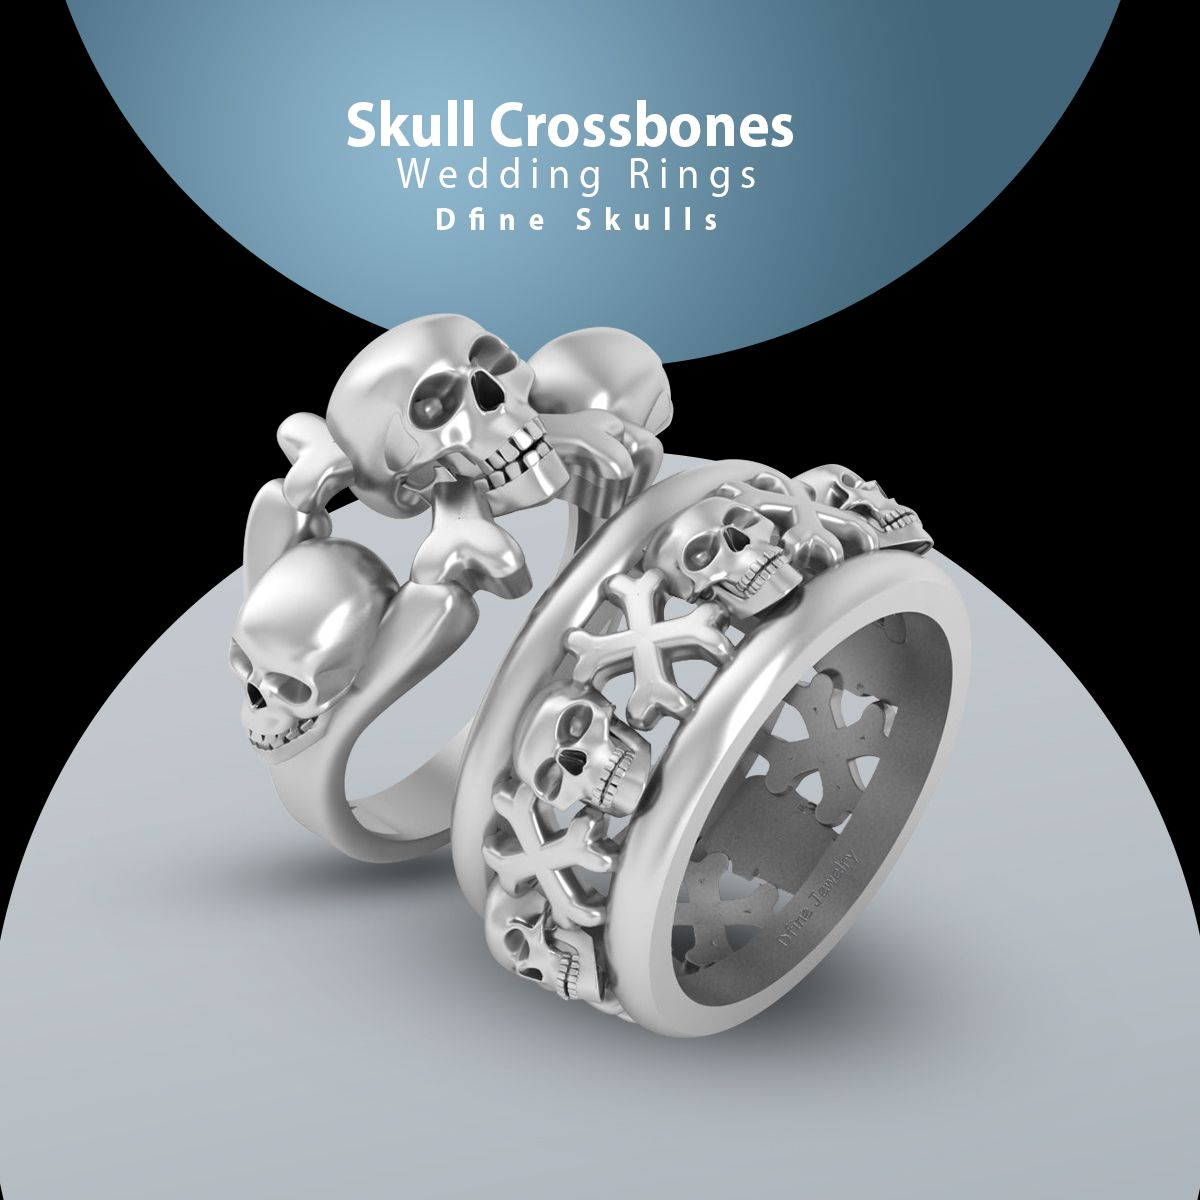 Skull Crossbones Wedding Rings Matching Skull Couple Ring Set Silver Couples Ring Set Wedding Ring Bands Set Wedding Rings Engagement